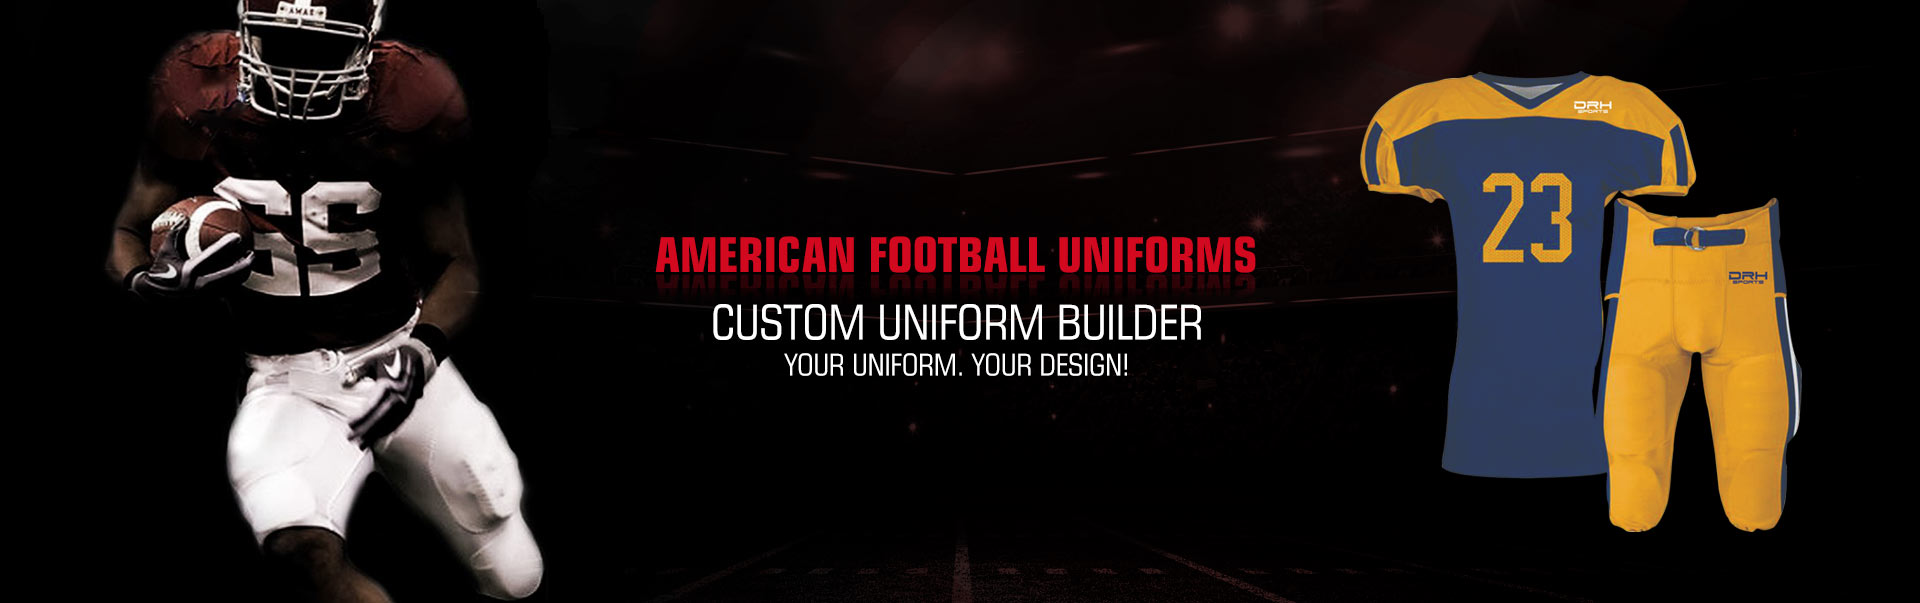 American Football Uniform Wholesaler, Suppliers in Les Abymes